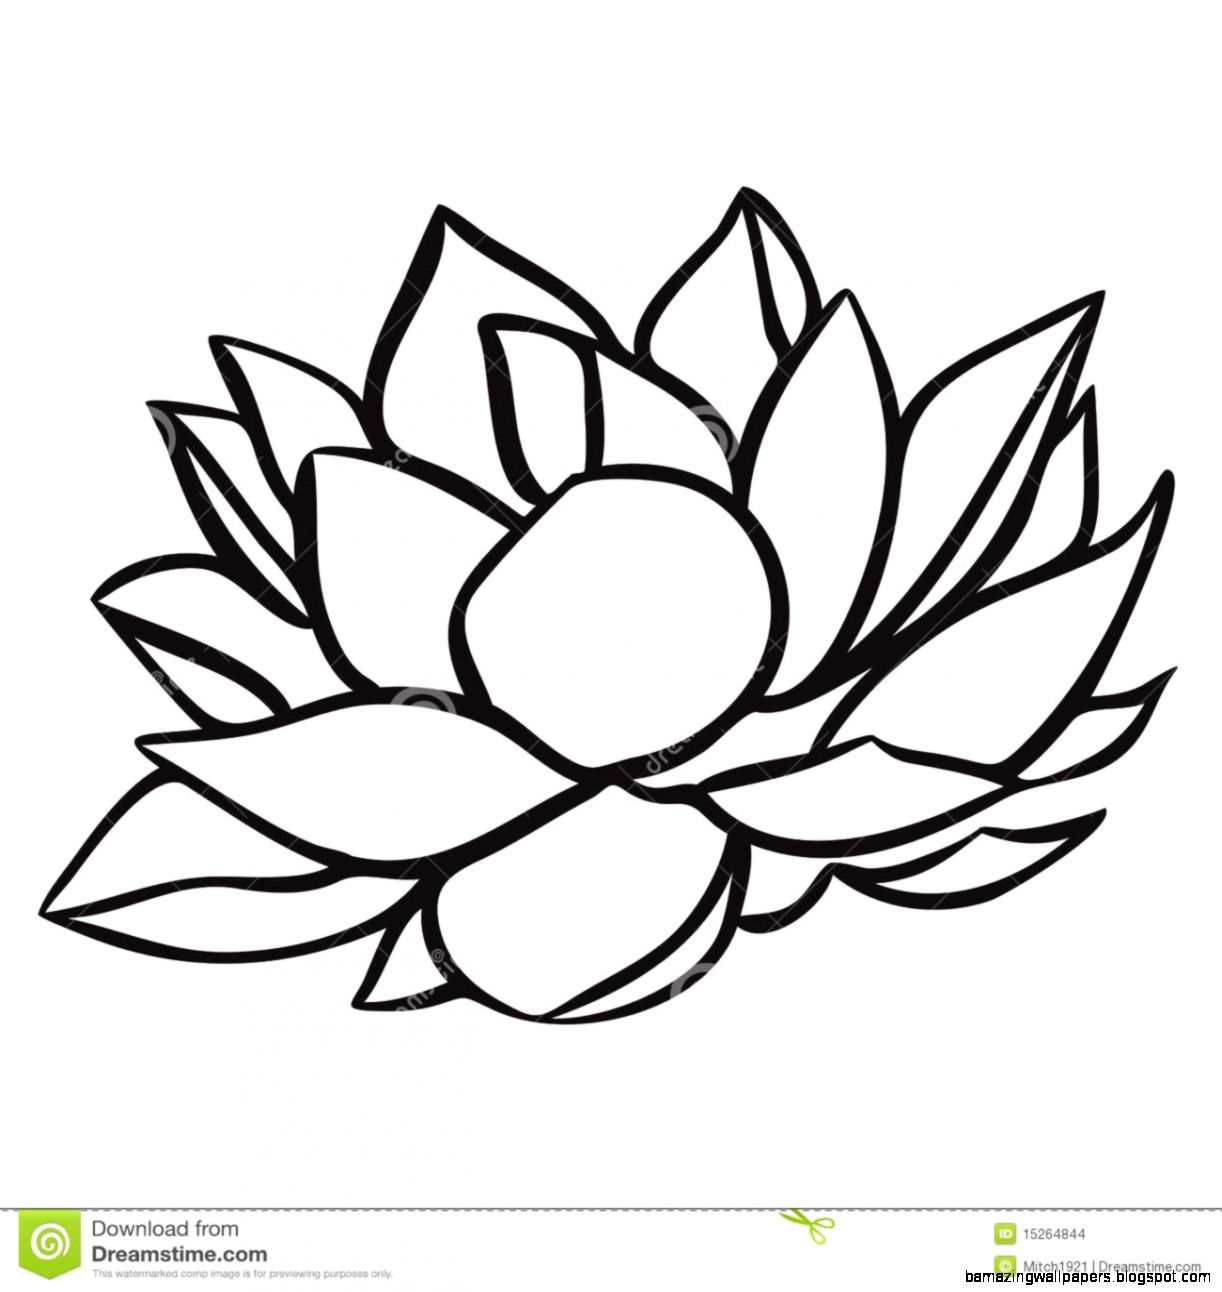 1222x1292 water lily flower drawing water lily drawing at getdrawings free